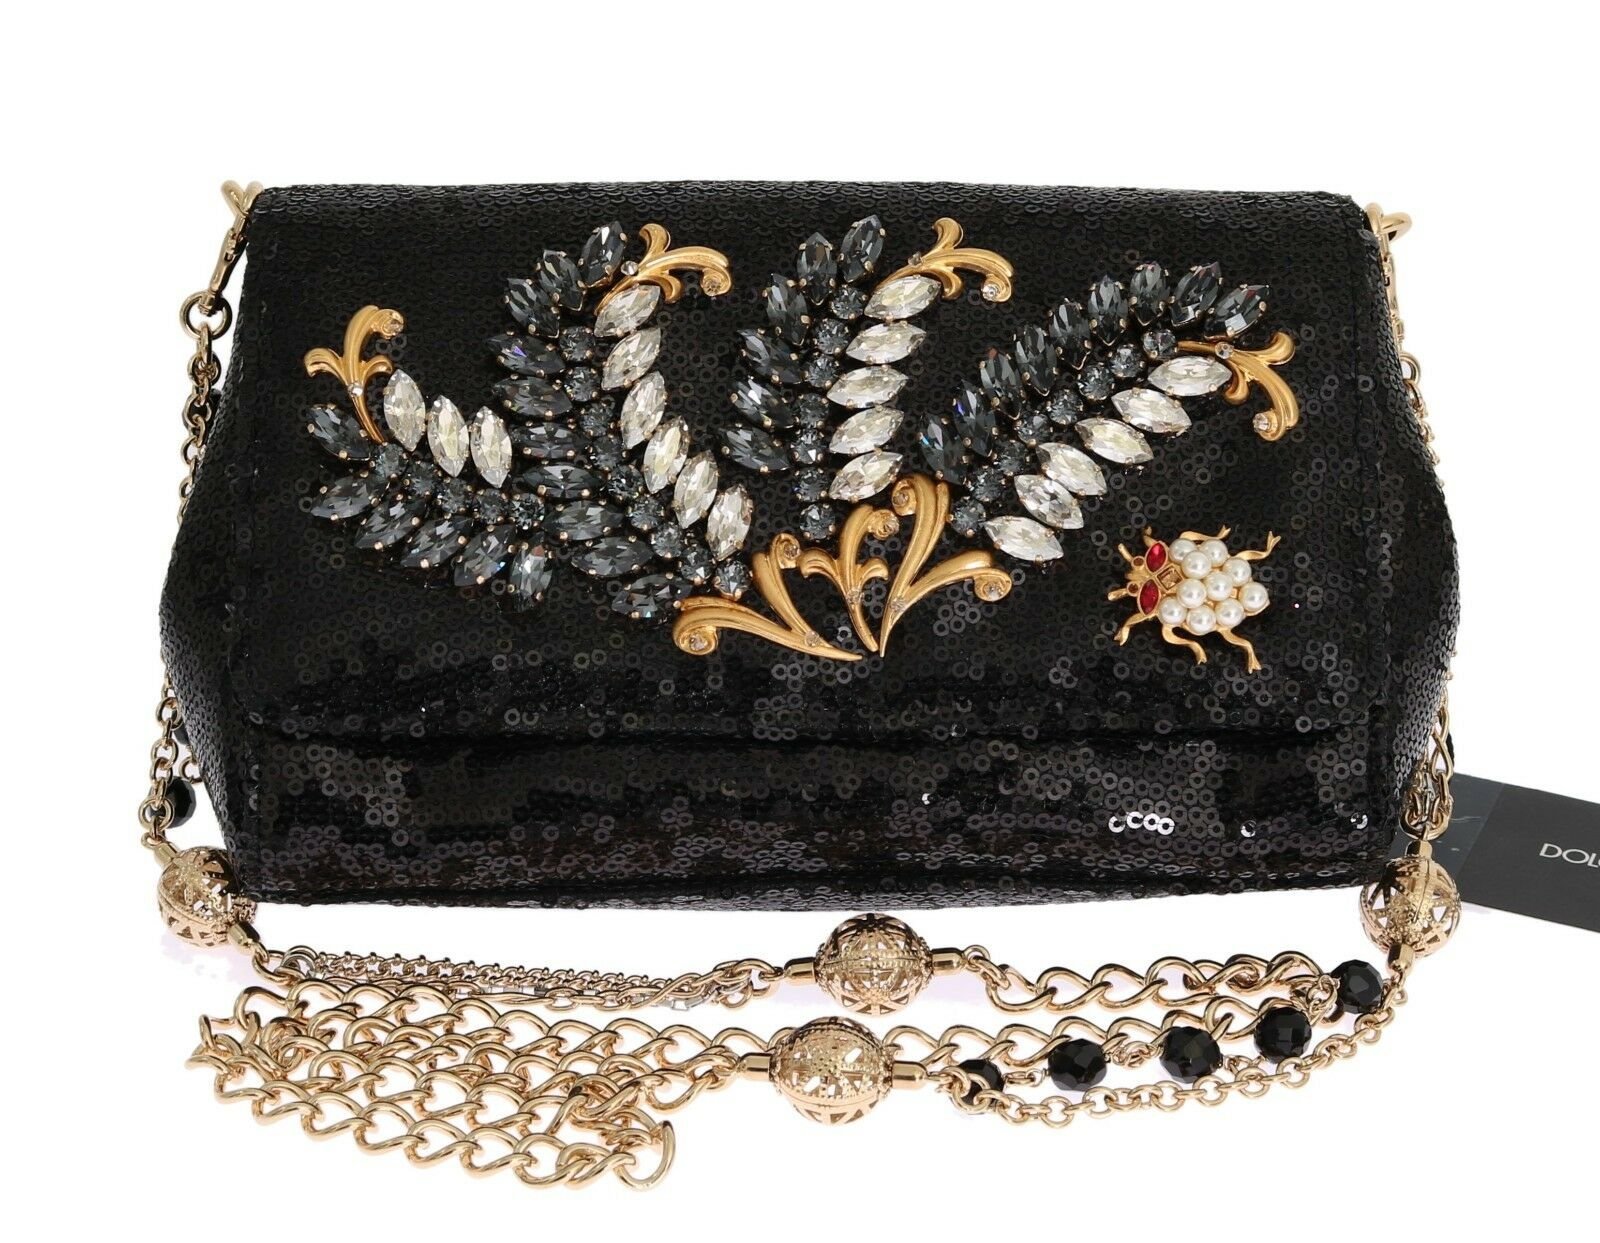 ef3881349cd 1 of 12Only 1 available NEW  2600 DOLCE   GABBANA Bag Clutch Purse Black  Crystal Sequined Shoulder Party